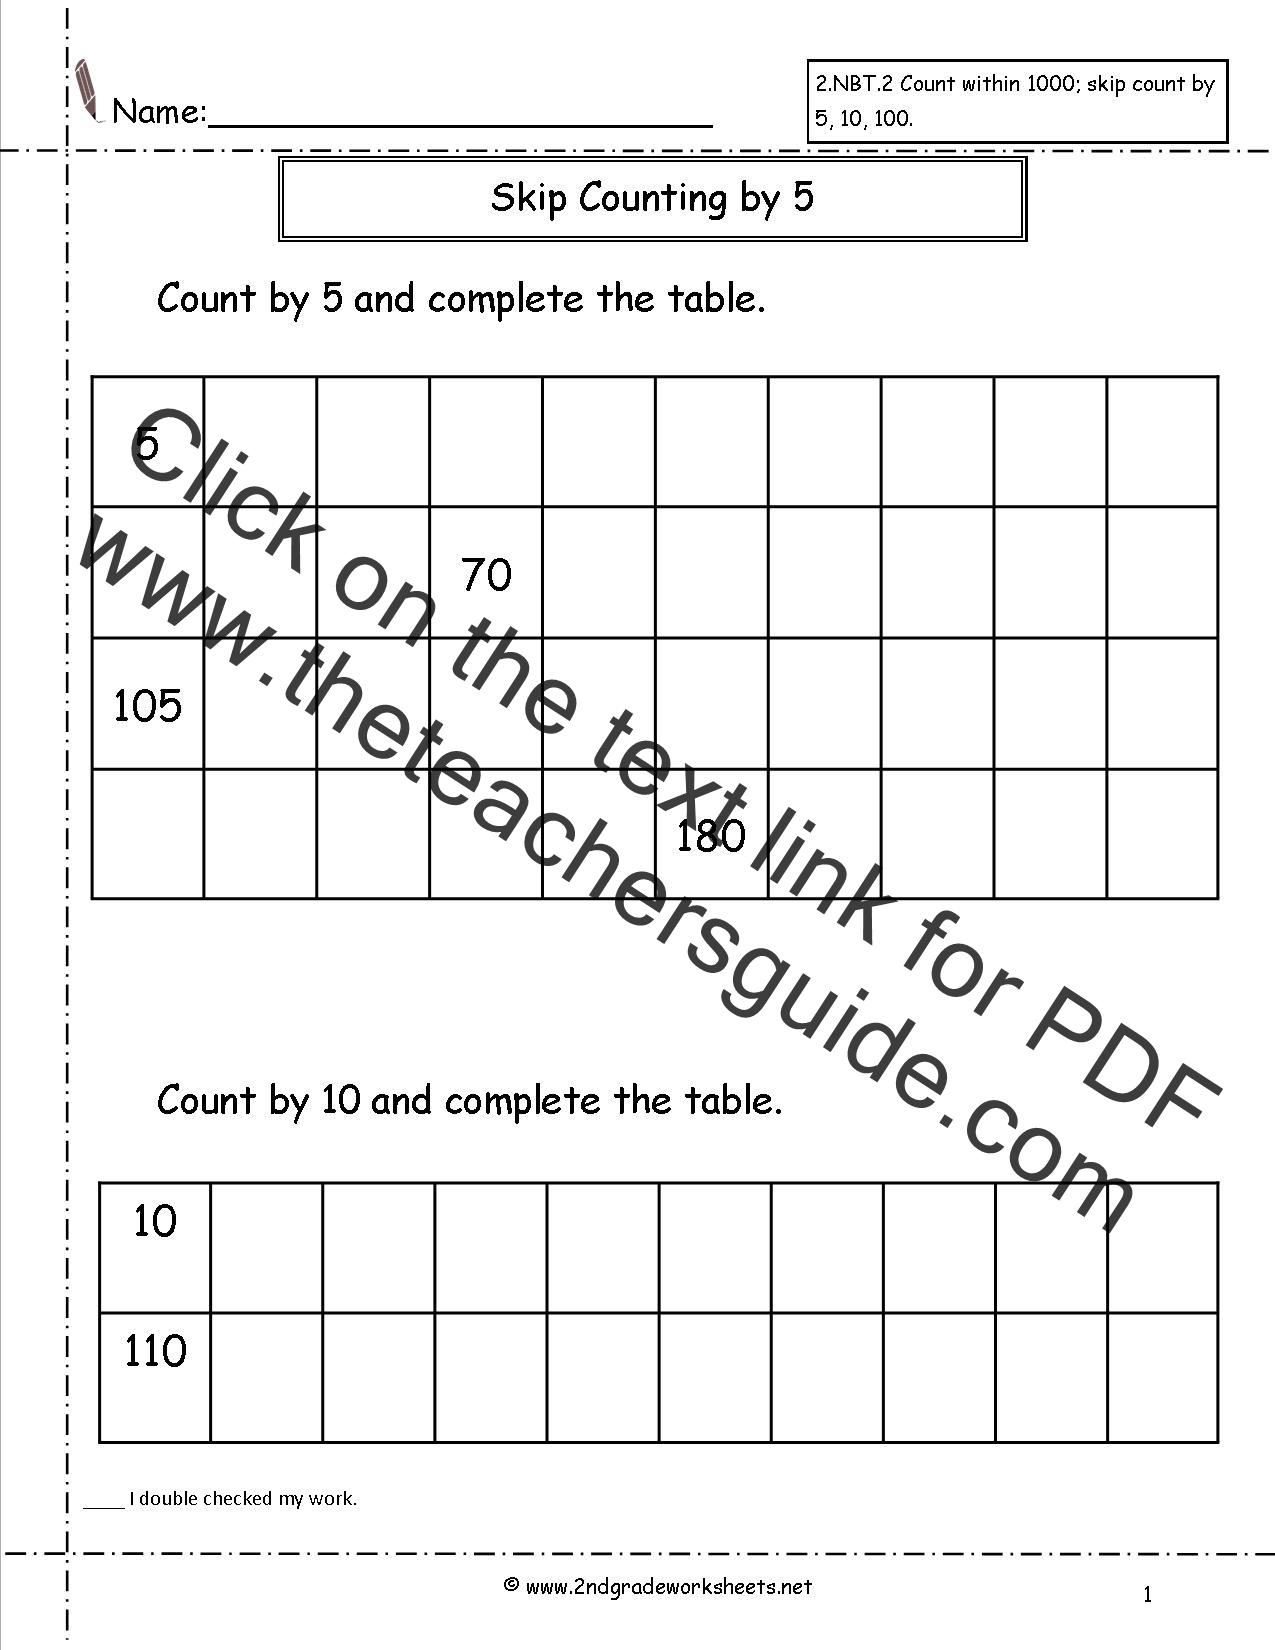 worksheet Worksheets Counting To 100 free skip counting worksheets count by 5 and 10